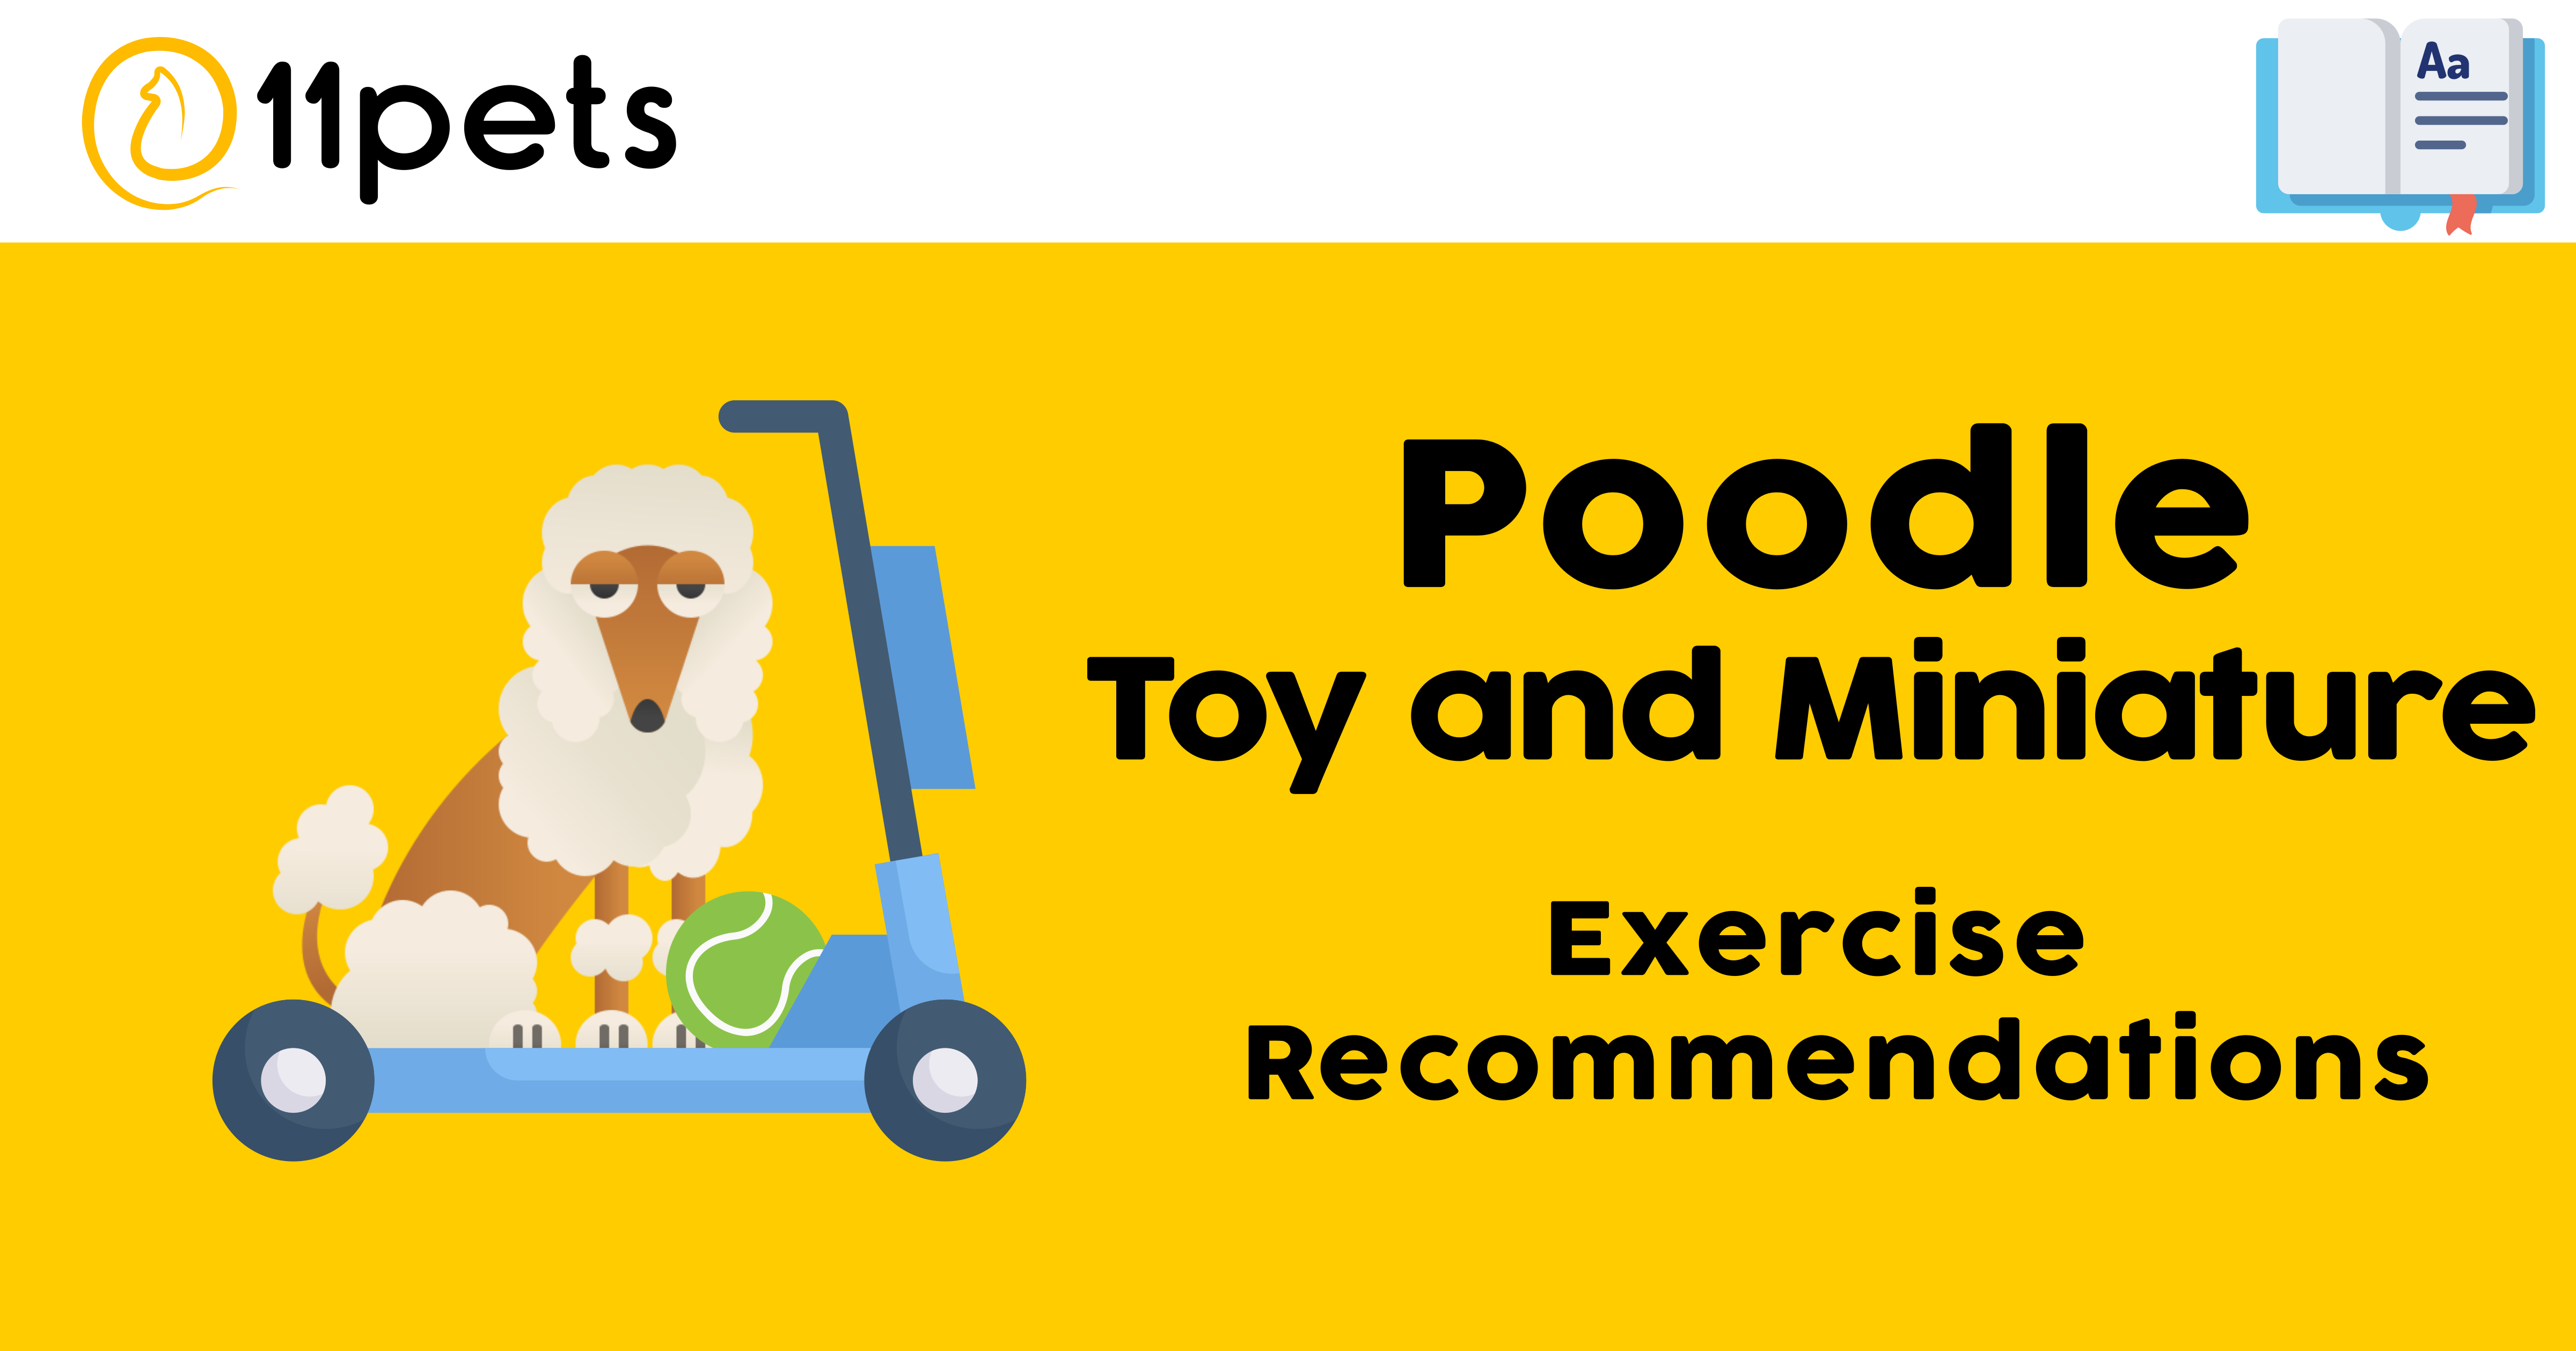 Poodle Toy and Miniature - Exercise Recommendations